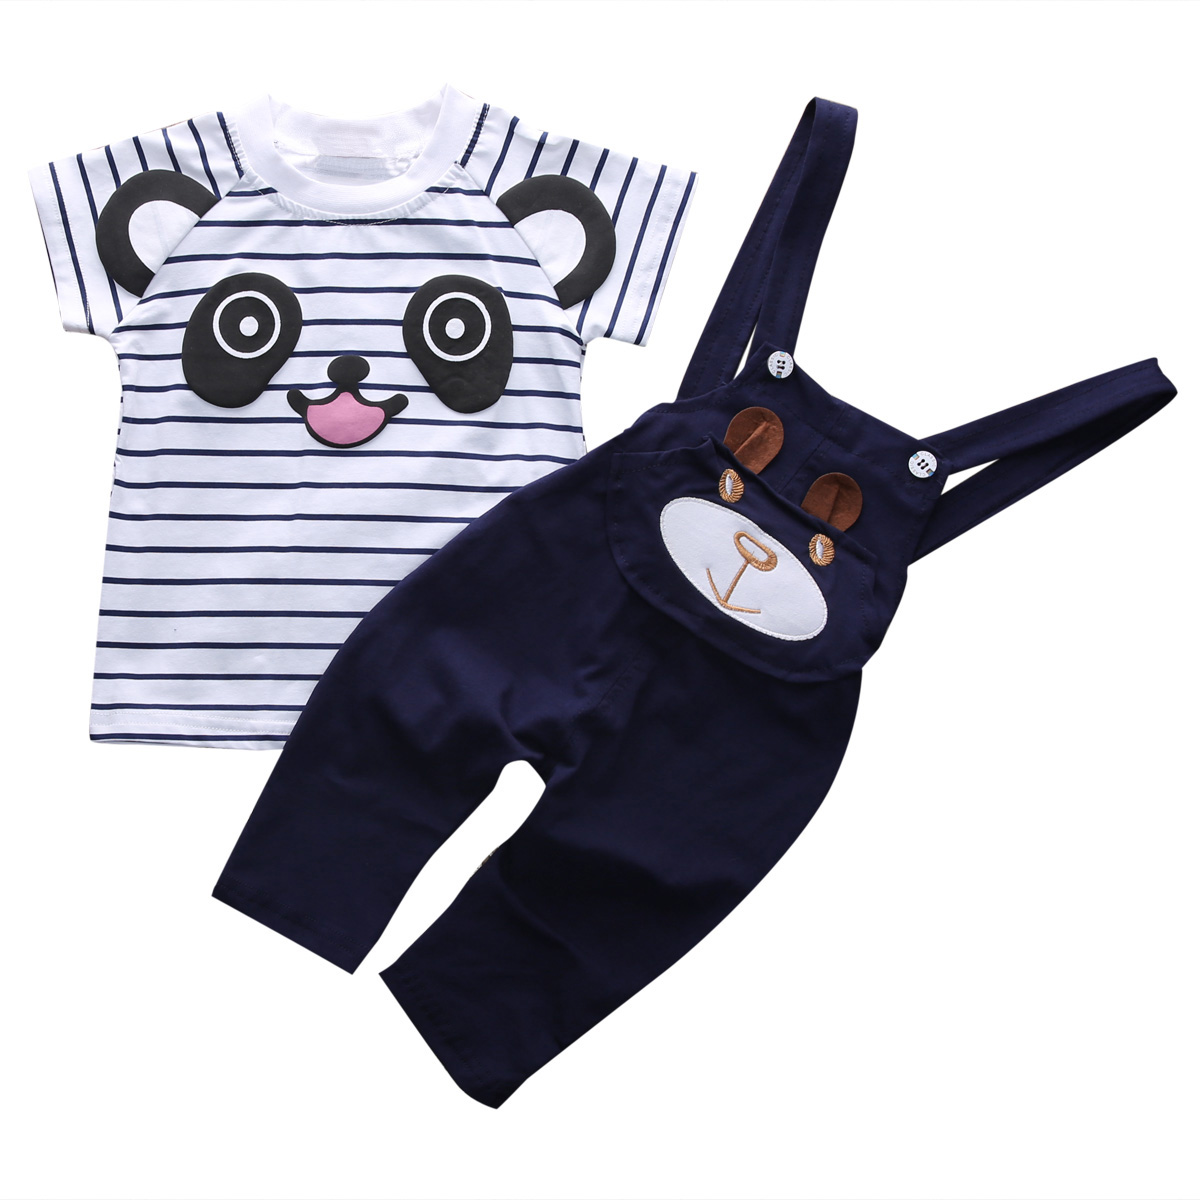 2018 New Fashion 2PCS Newborn Kids Baby Boy Girls Short Sleeve Striped Bear T-shirt Tops+Pants Overalls 2Pcs Outfits Clothes Set